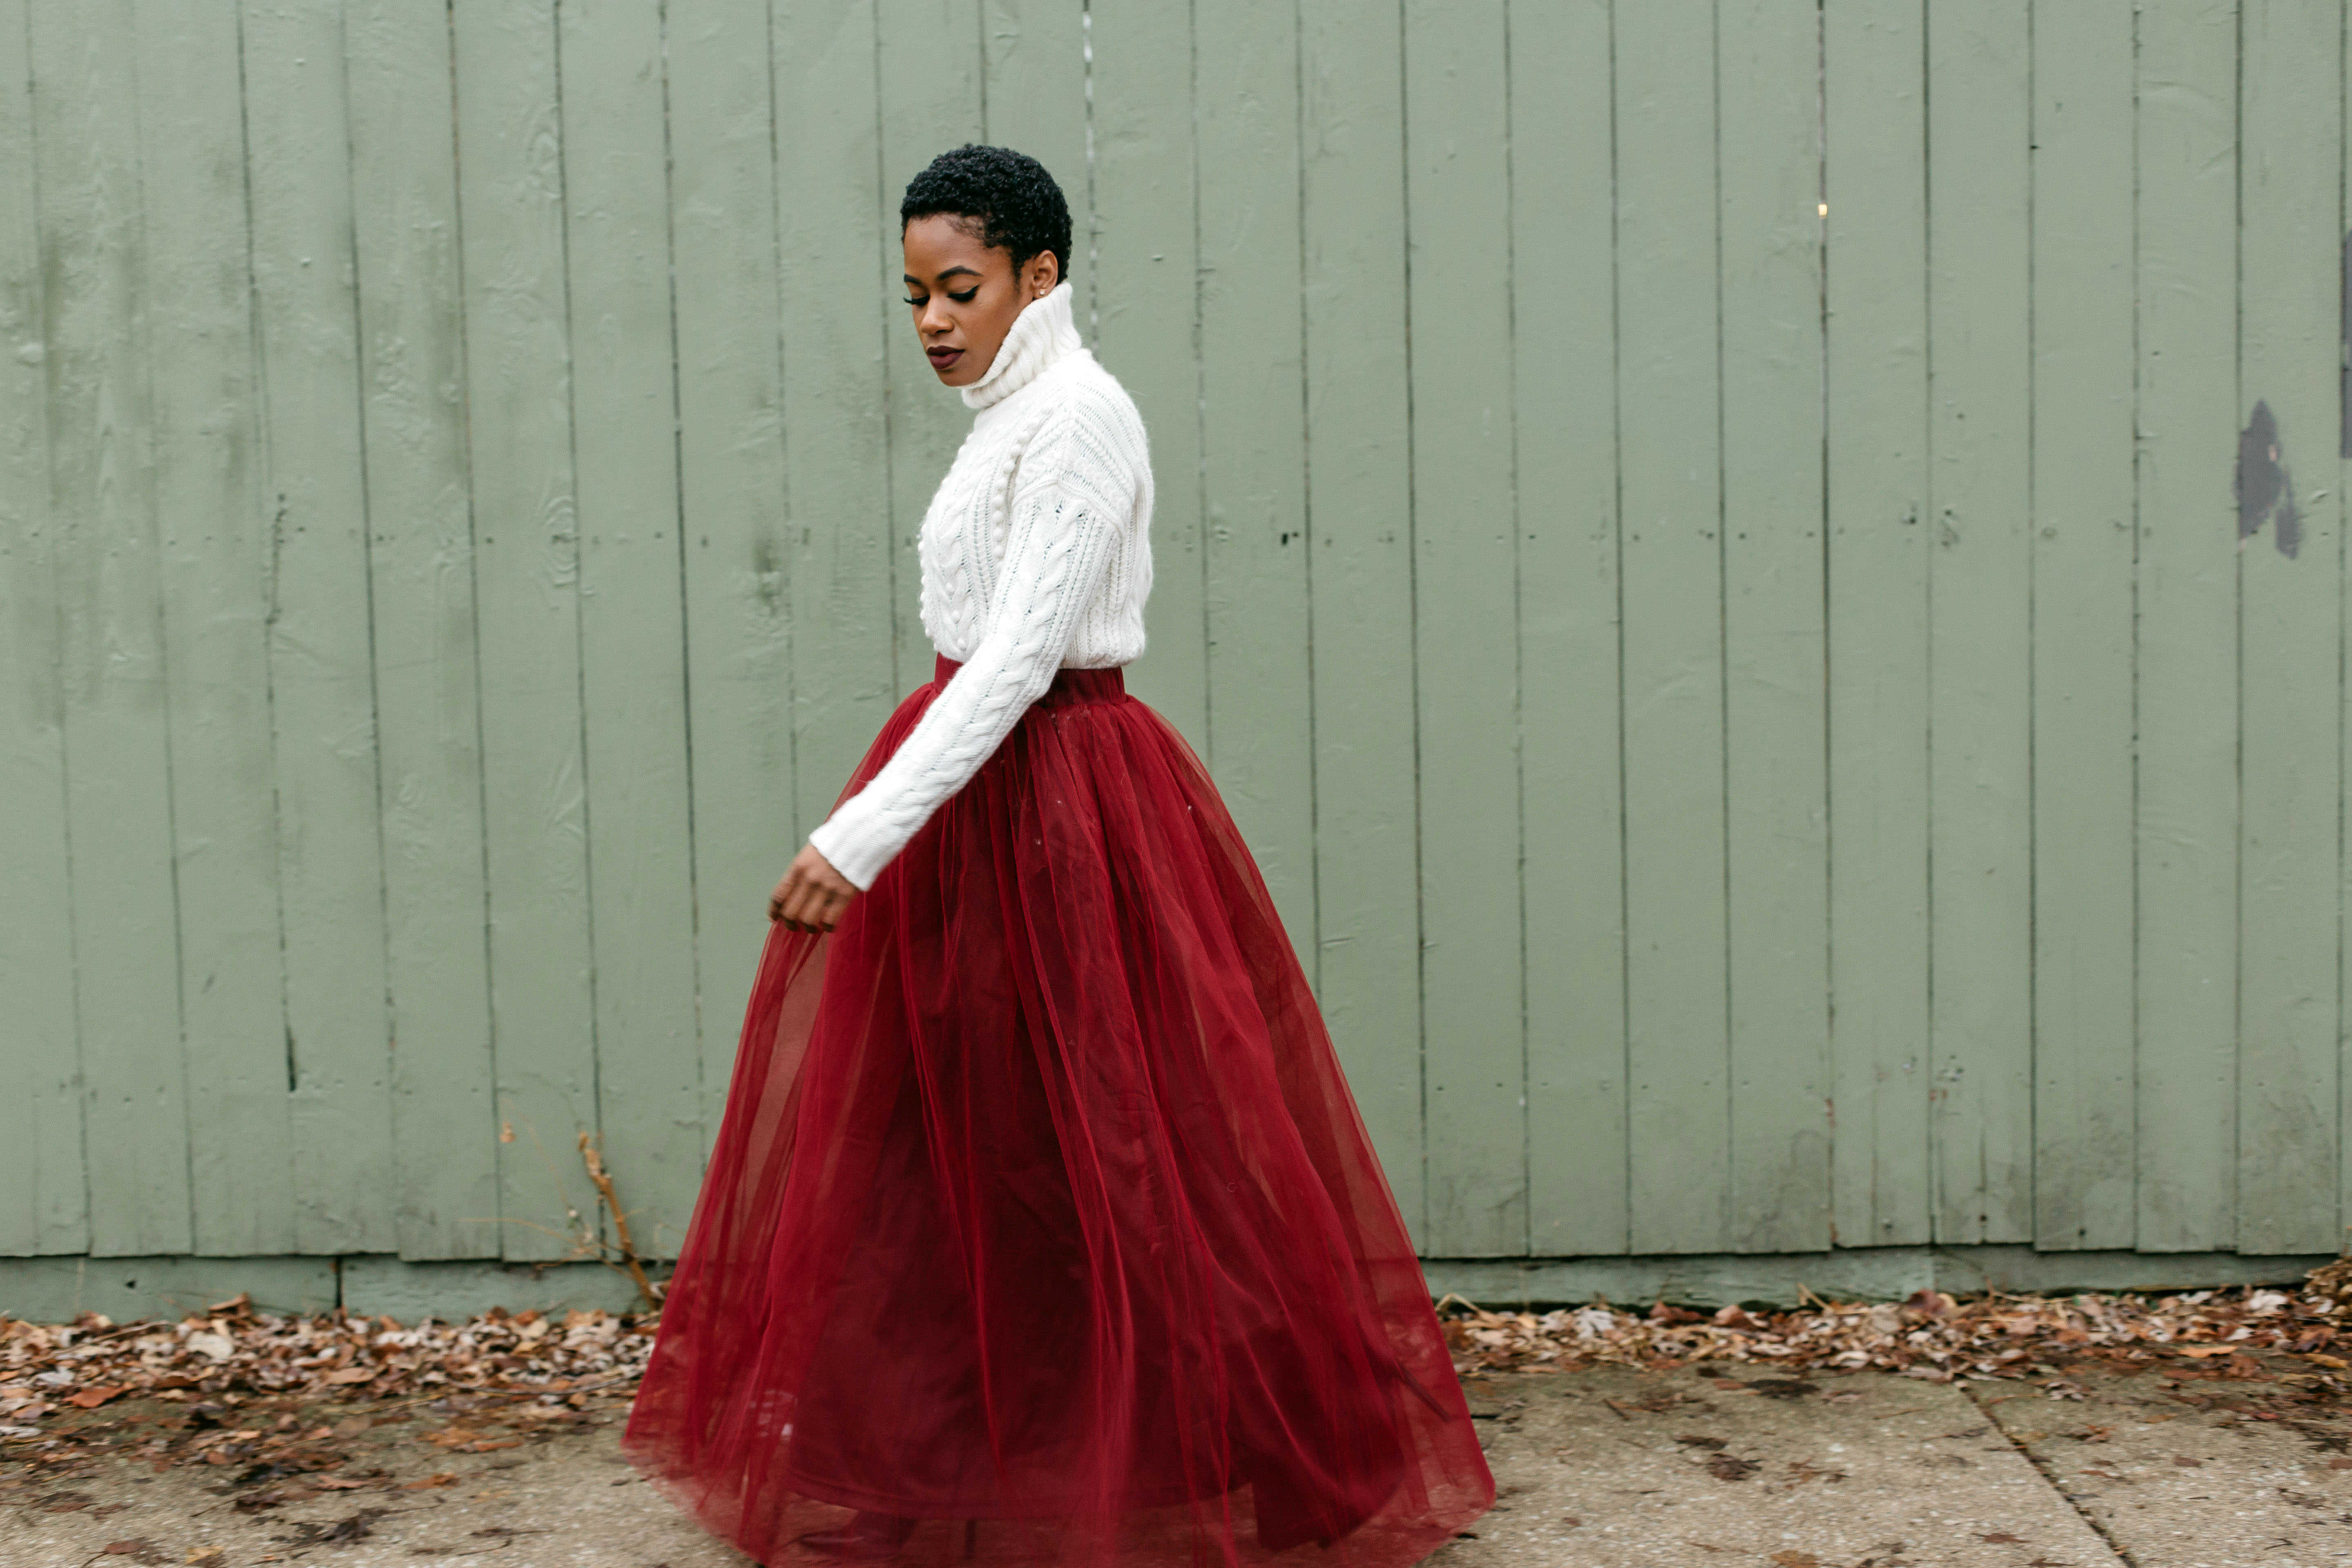 White Turtleneck and Red Tulle Skirt 3